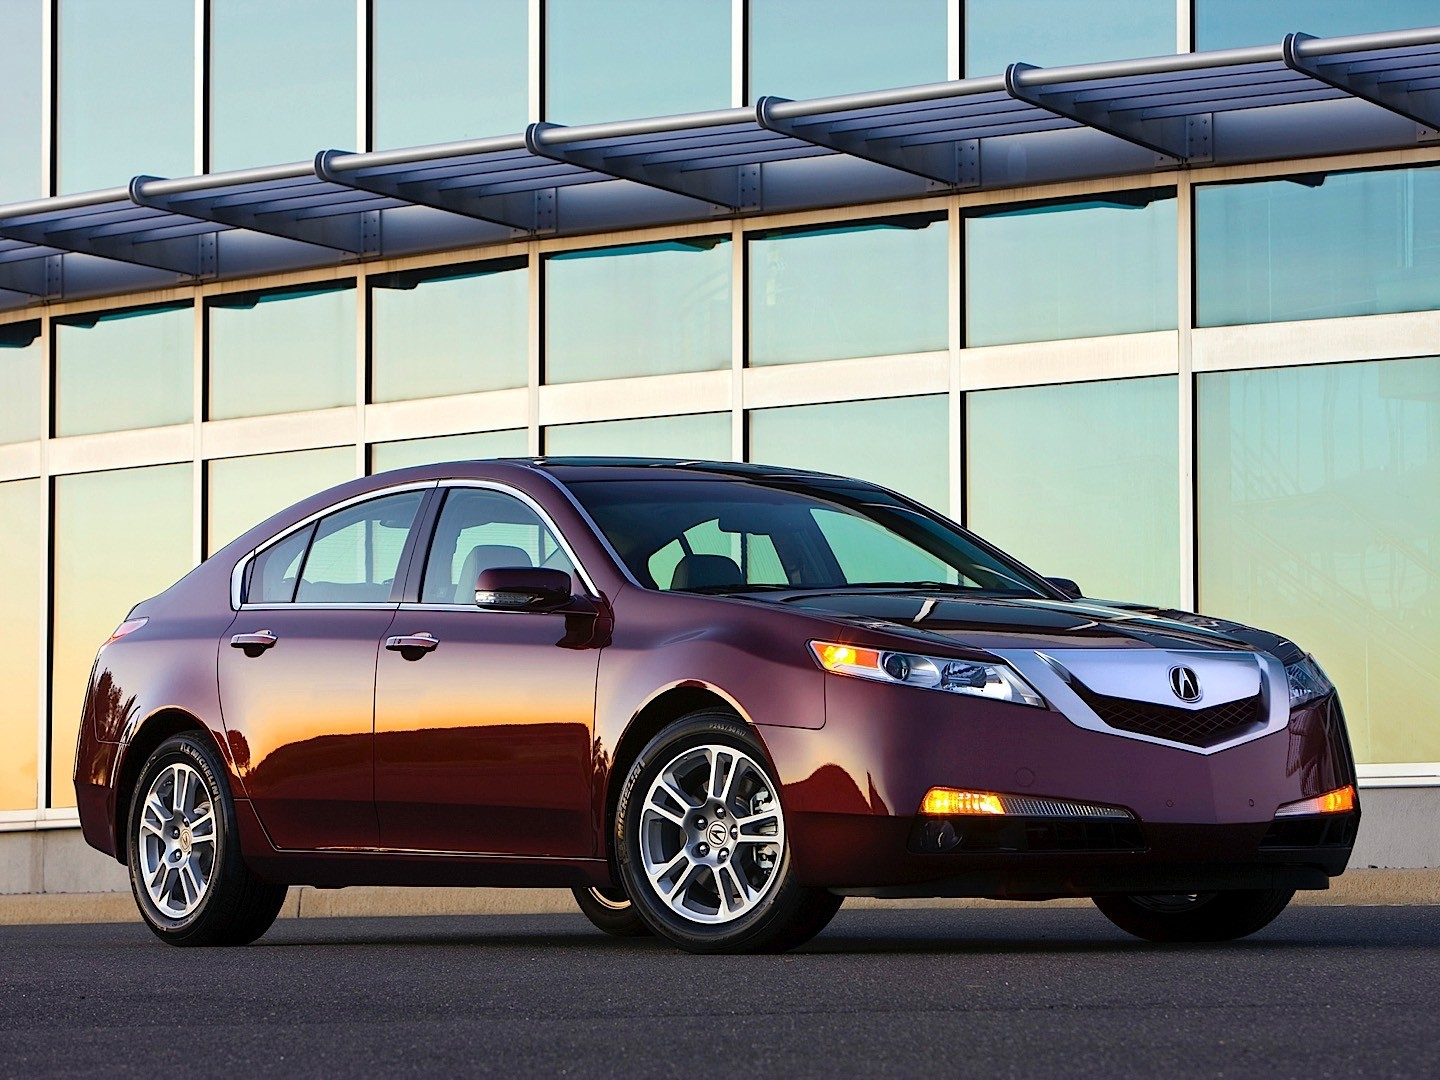 ACURA TL specs & photos - 2008, 2009, 2010, 2011, 2012, 2013, 2014 - autoevolution